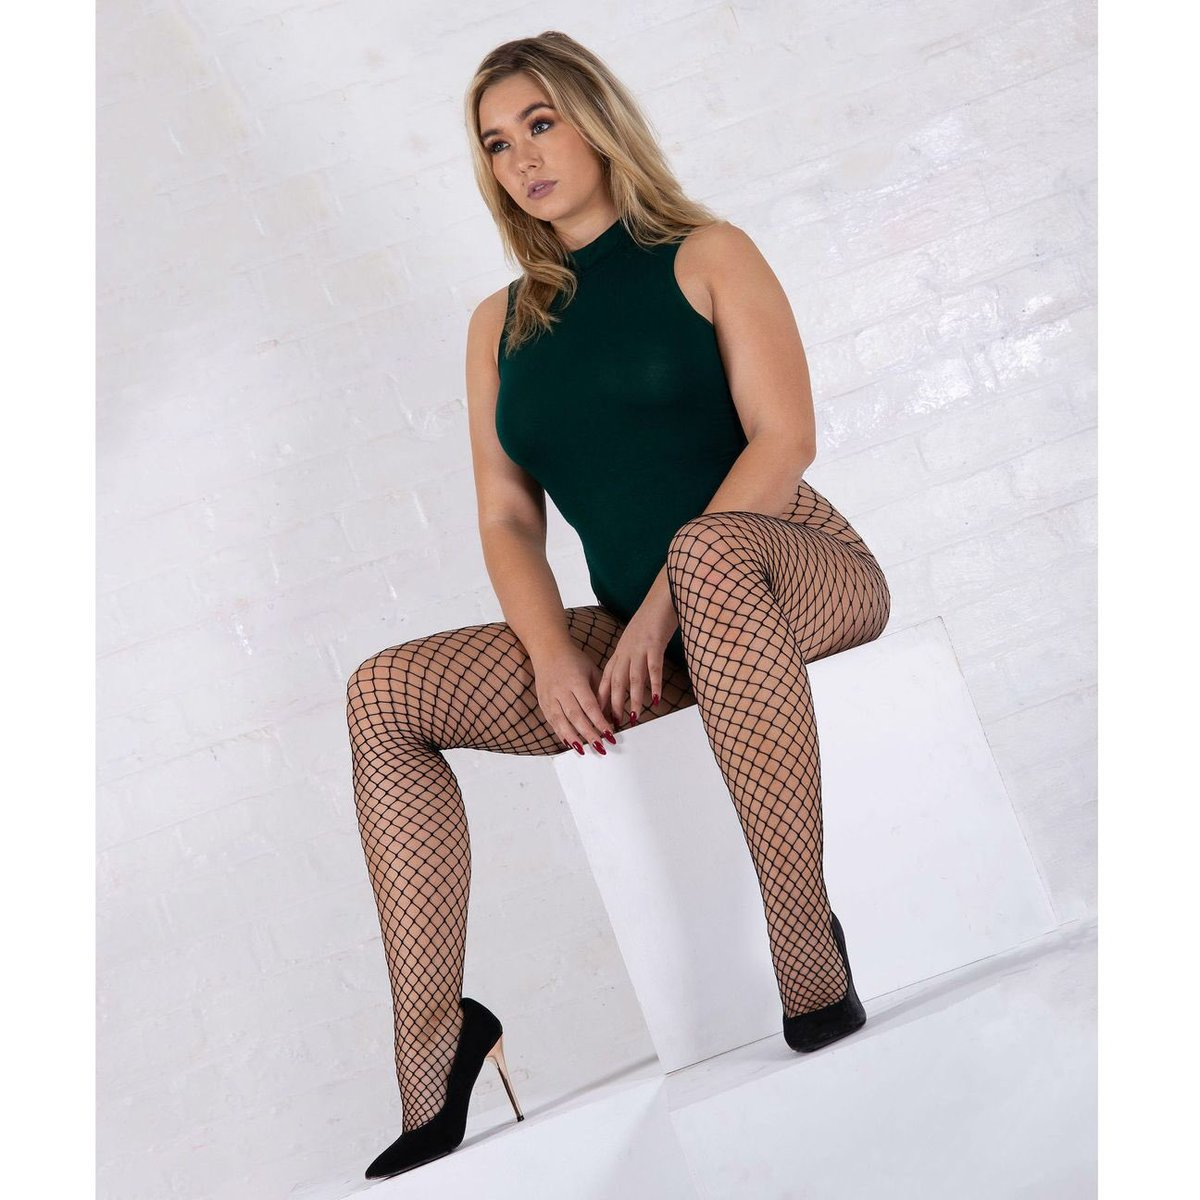 🖤 it's #fishnetfriday medium Fishnet Tights with Jonathan Aston Midi-Net Fishnets. A welcome change from standard fishnets 🖤 @bethany_cammack #fishnettights #fishnetpantyhose #nettights #netpantyhose #jonathanastontights #jmwreflectionofyou https://essexeelegs.co.uk/products/jonathan-aston-midi-net-fishnet-tights …